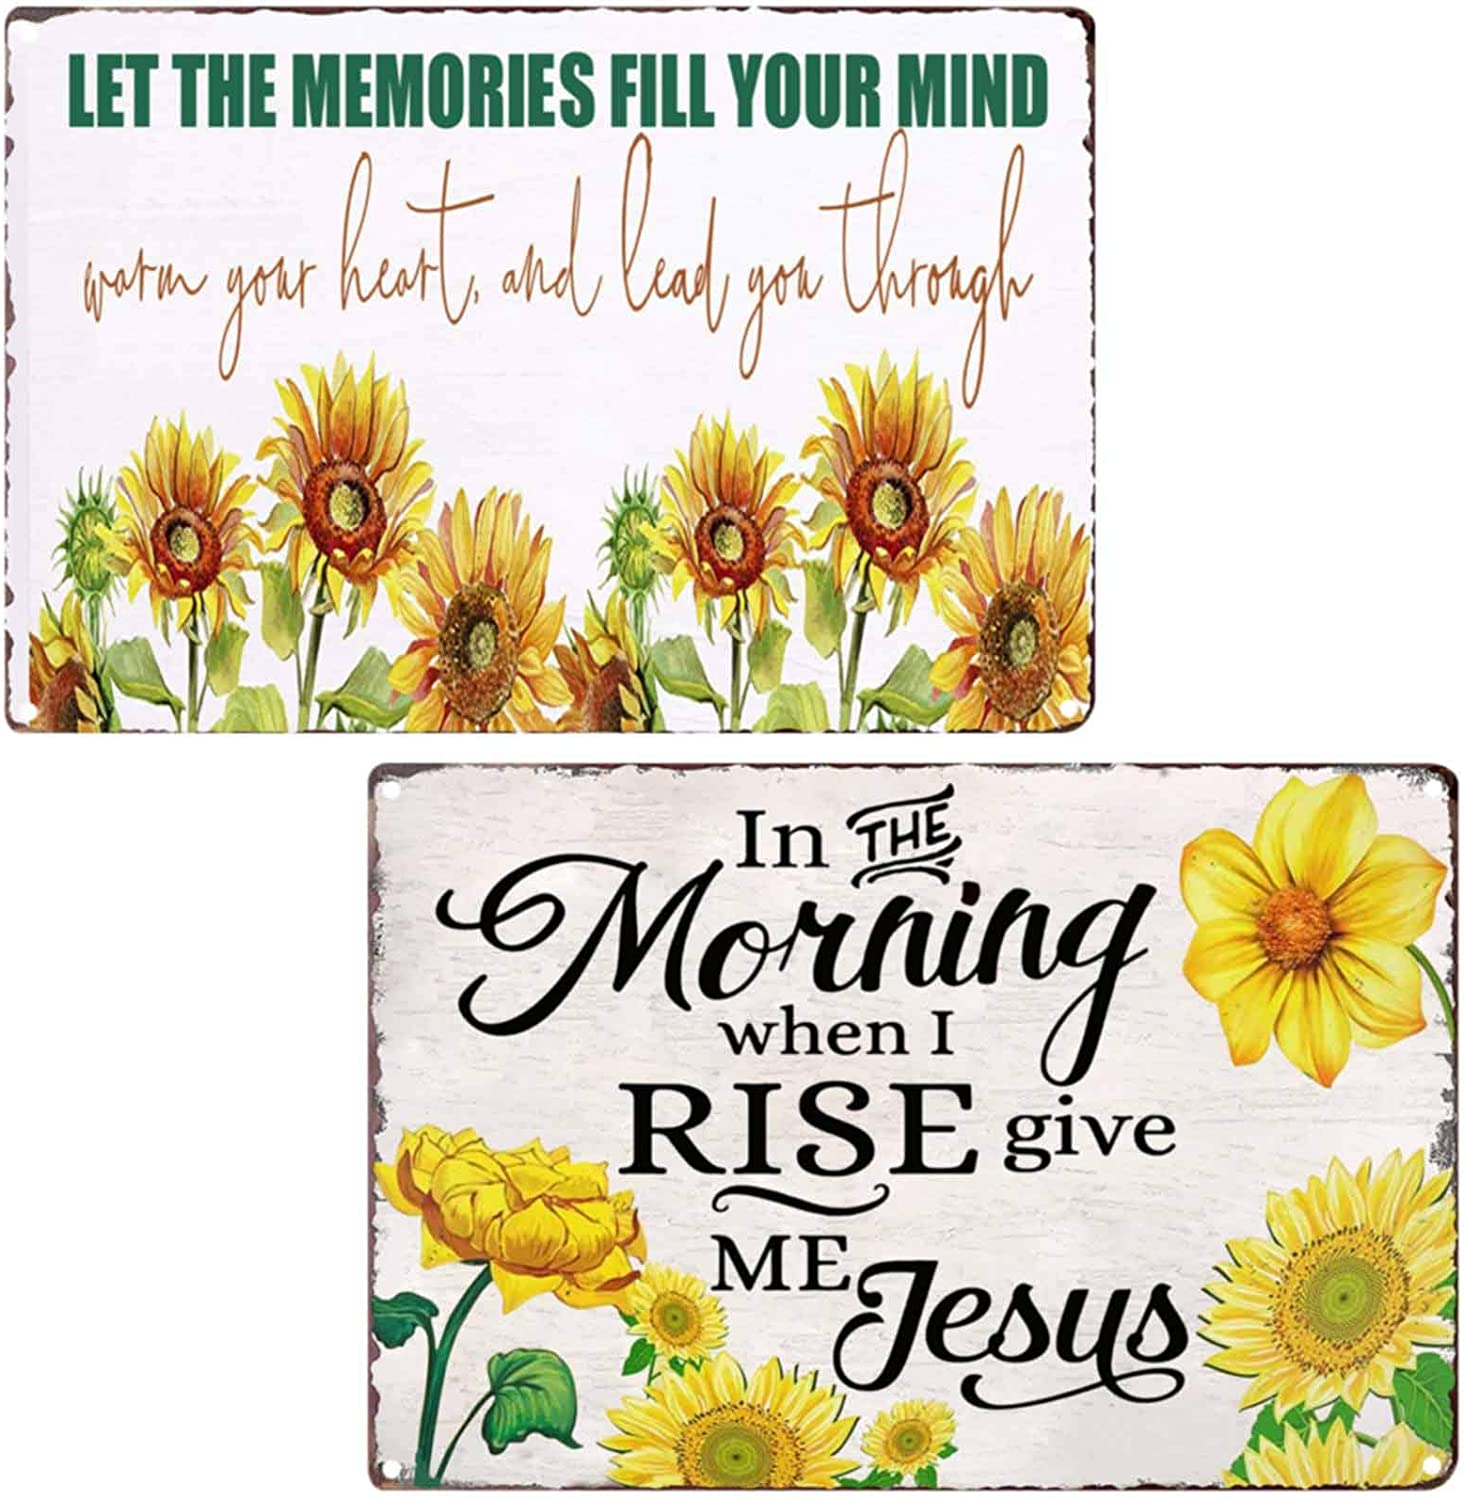 TISOSO Funny Quotes Sign in The Morning When I Rise Give Me Jesus Sunflowers Vintage Metal Tin Sign Wall Art Decor for Living Room Home Coffee Bar Signs Gifts Decoration 2Pcs-8X12Inch